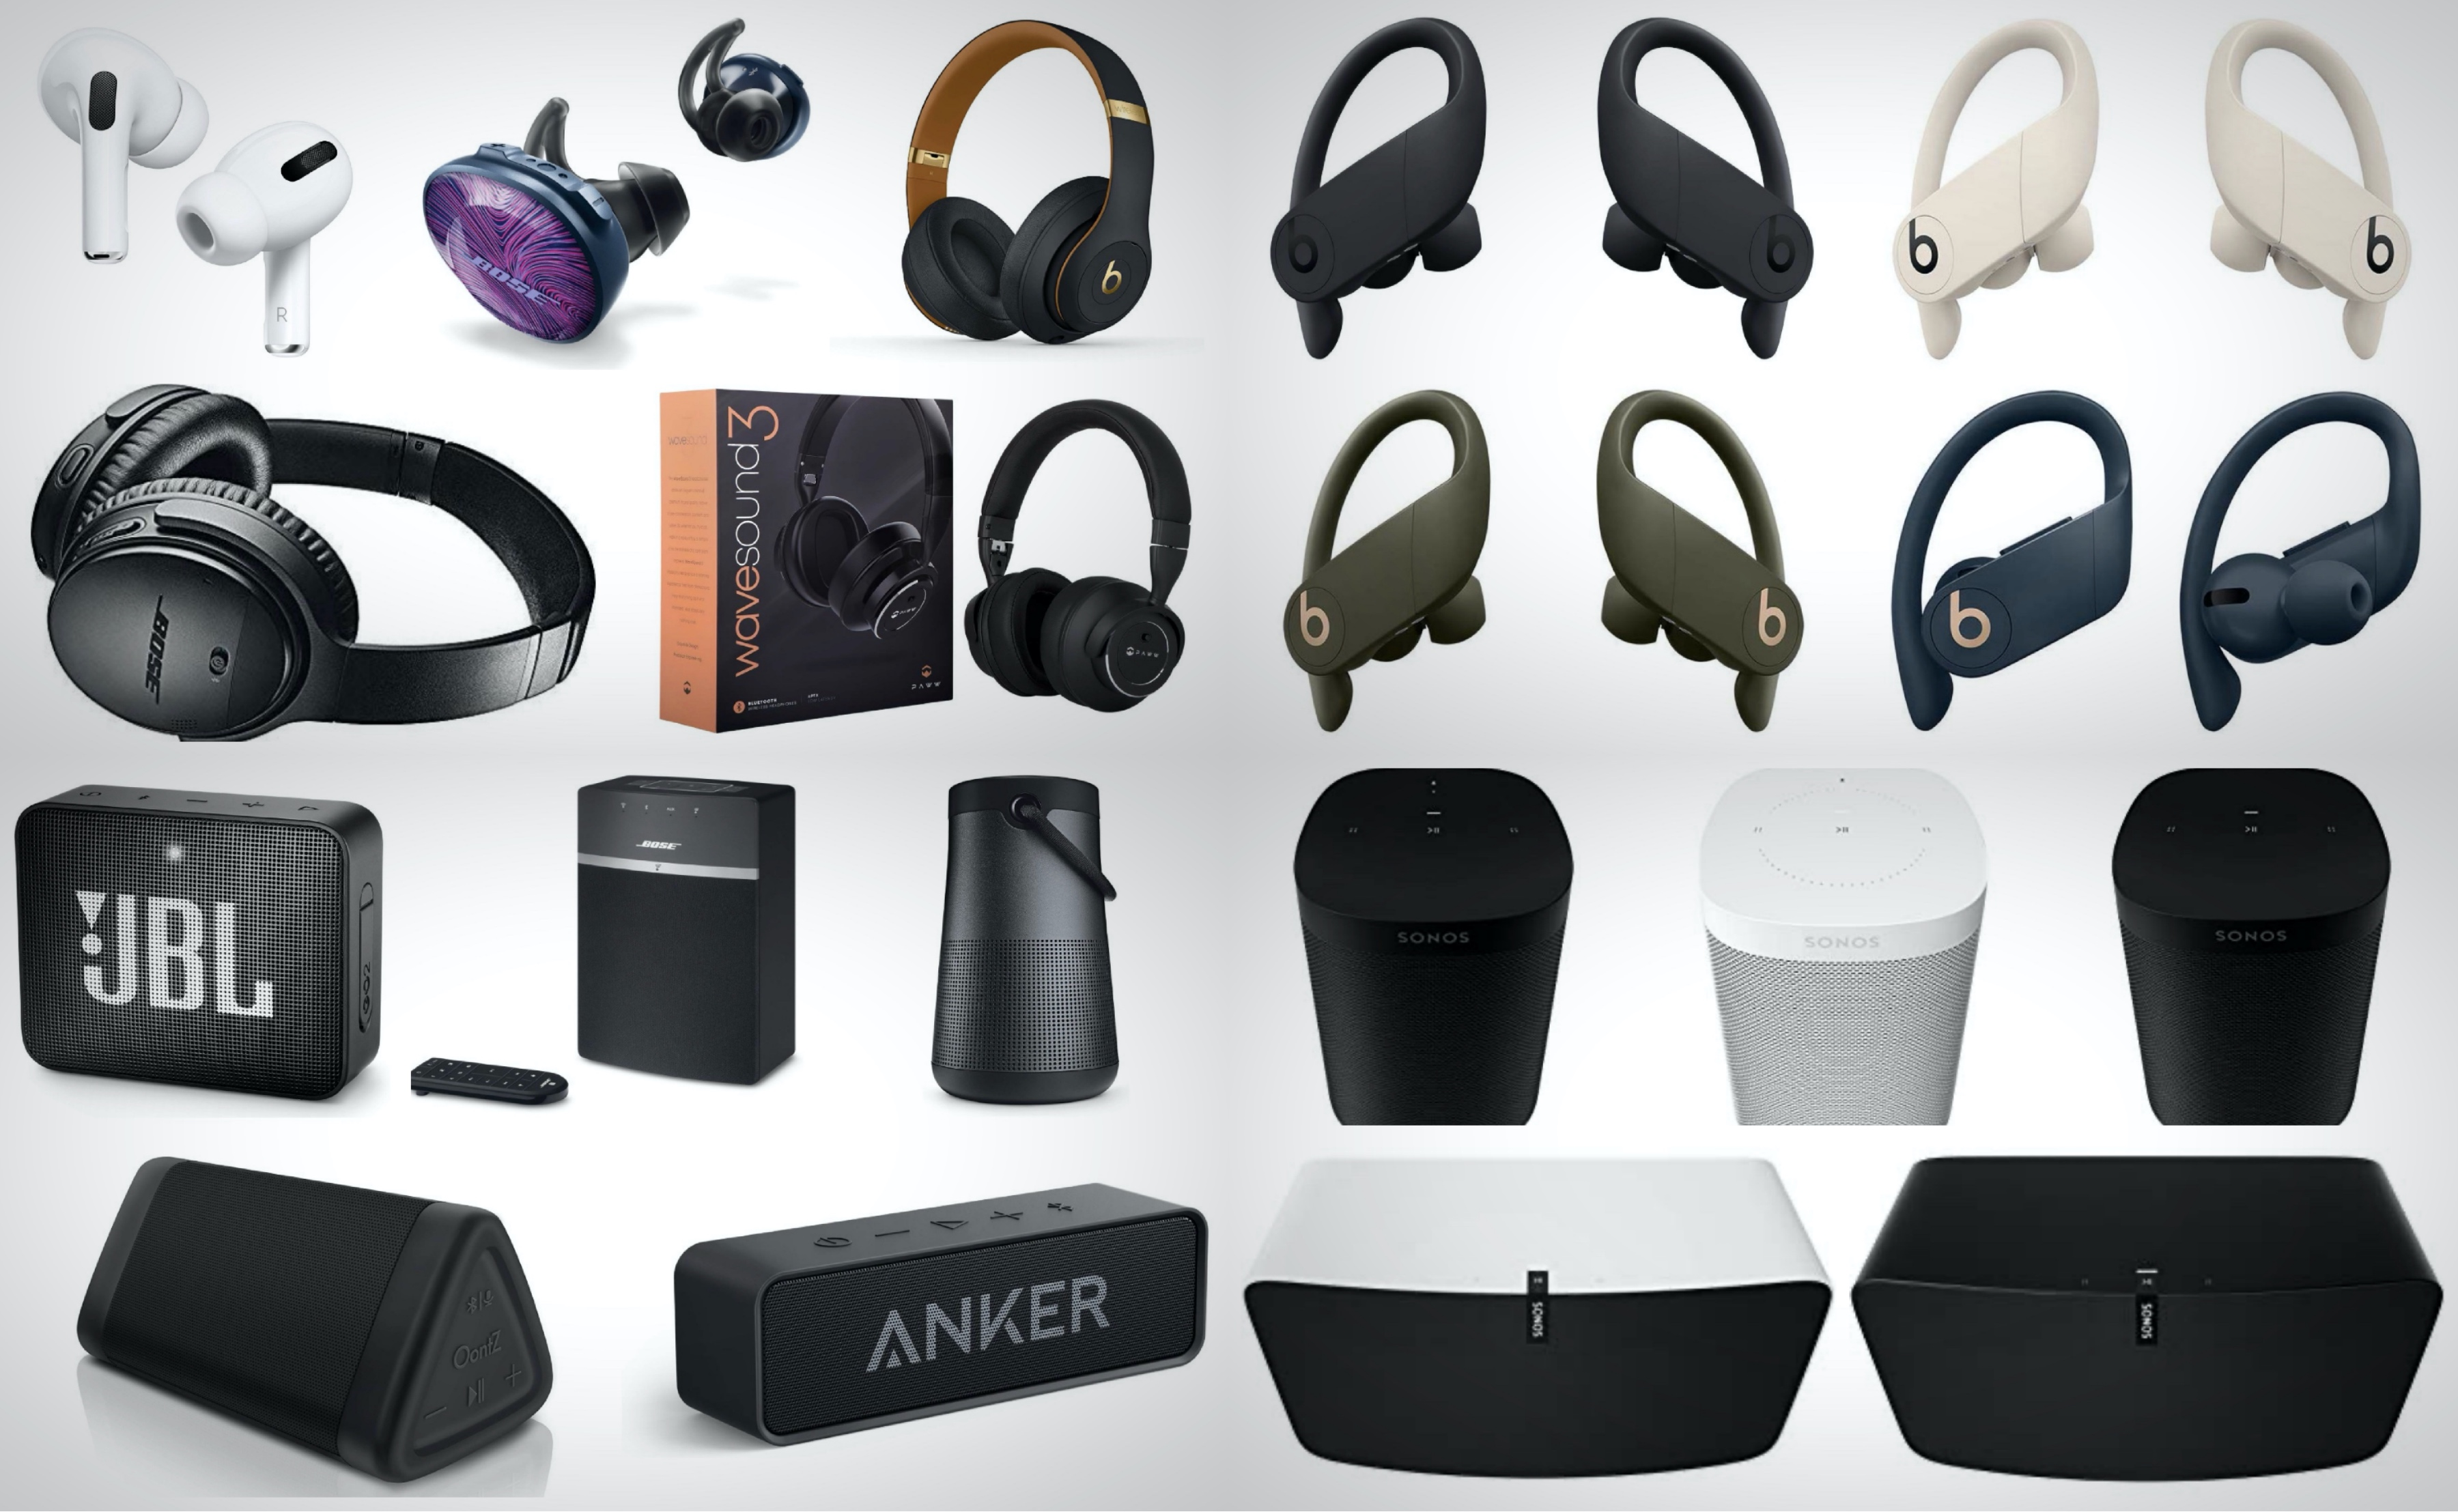 Best Cyber Monday Deals On Wireless Headphones Earbuds And Bluetooth Speakers Brobible